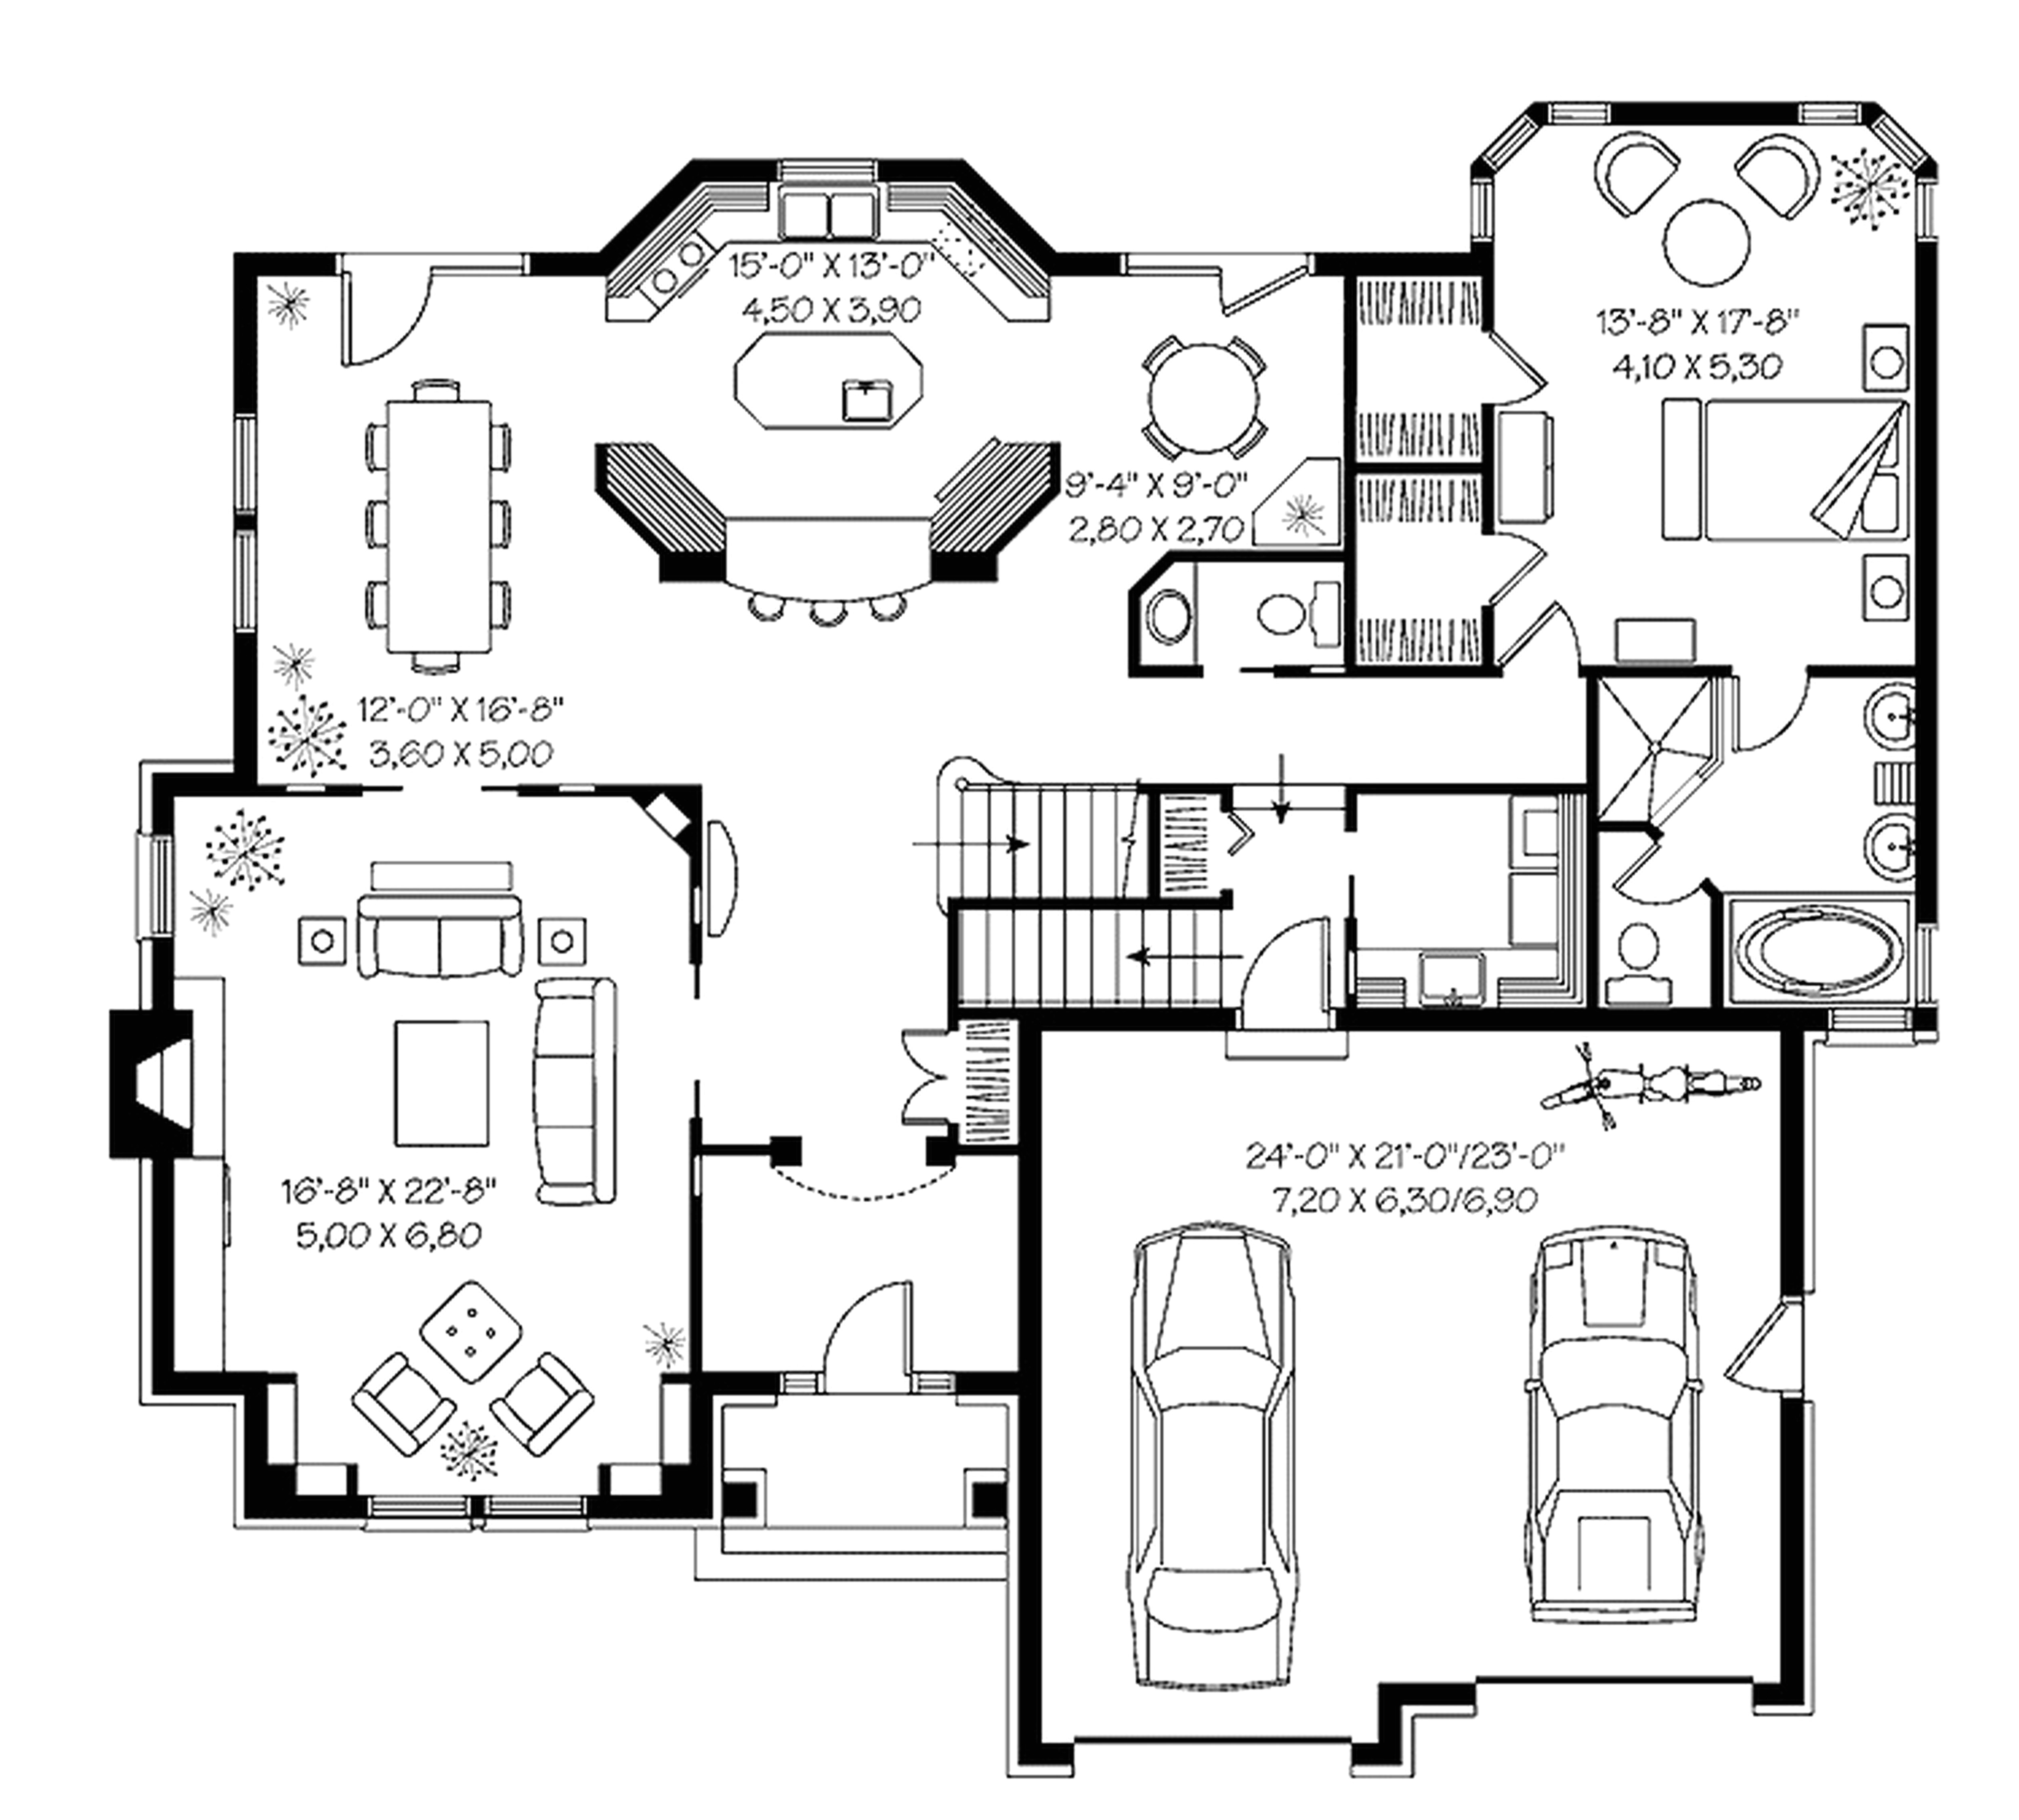 Draw Your Own House Plans Online Free Draw Your Own House Plans Online Free Fresh Inspiring